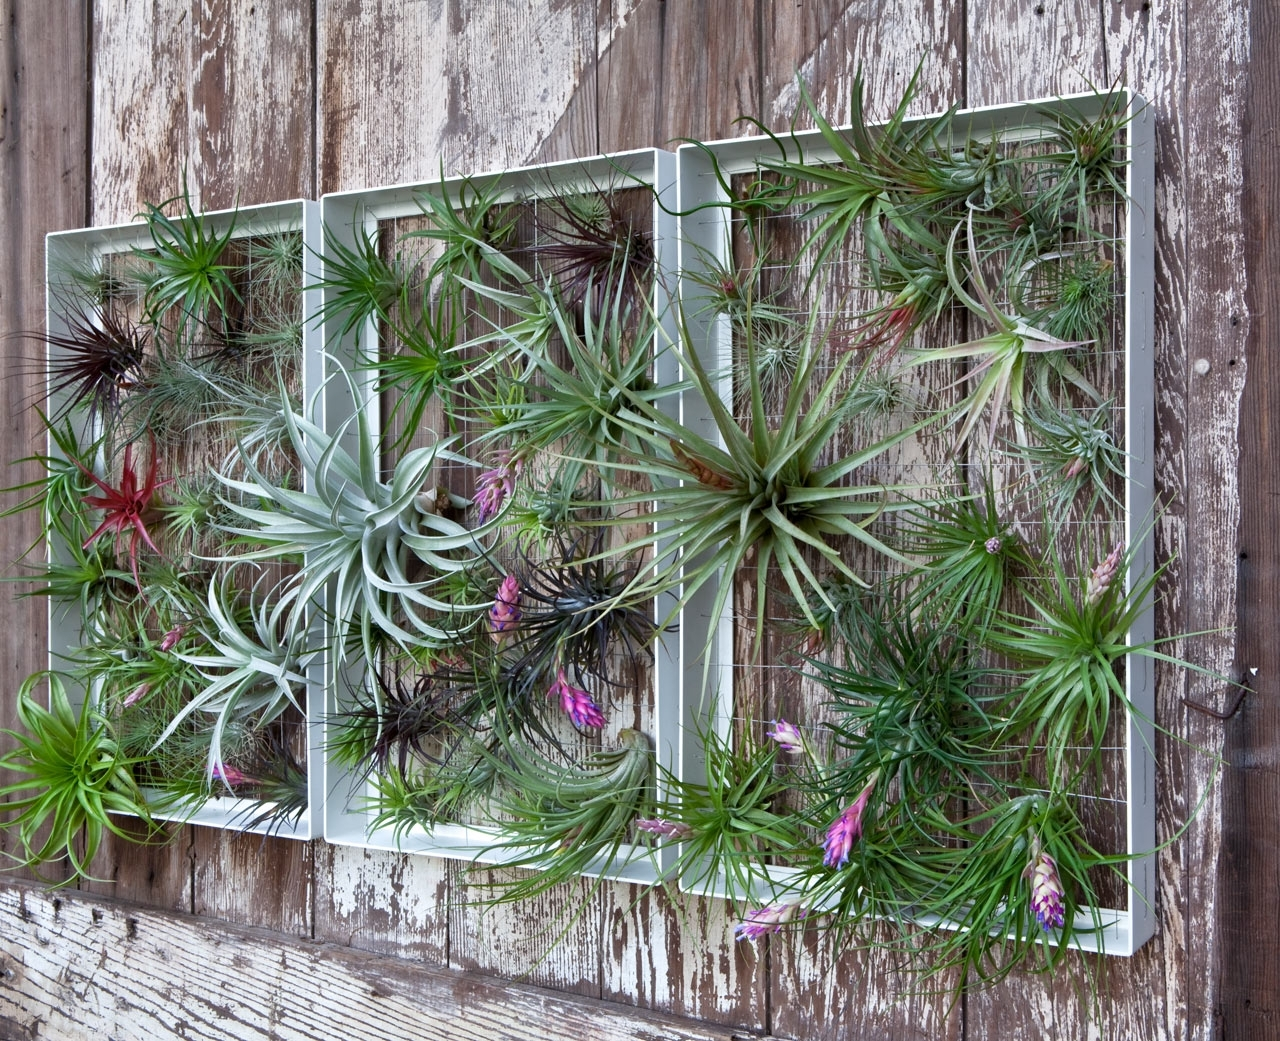 Living Wall Art Vertical Garden Framesairplantman – Design Milk Pertaining To Most Popular Living Wall Art (View 12 of 20)